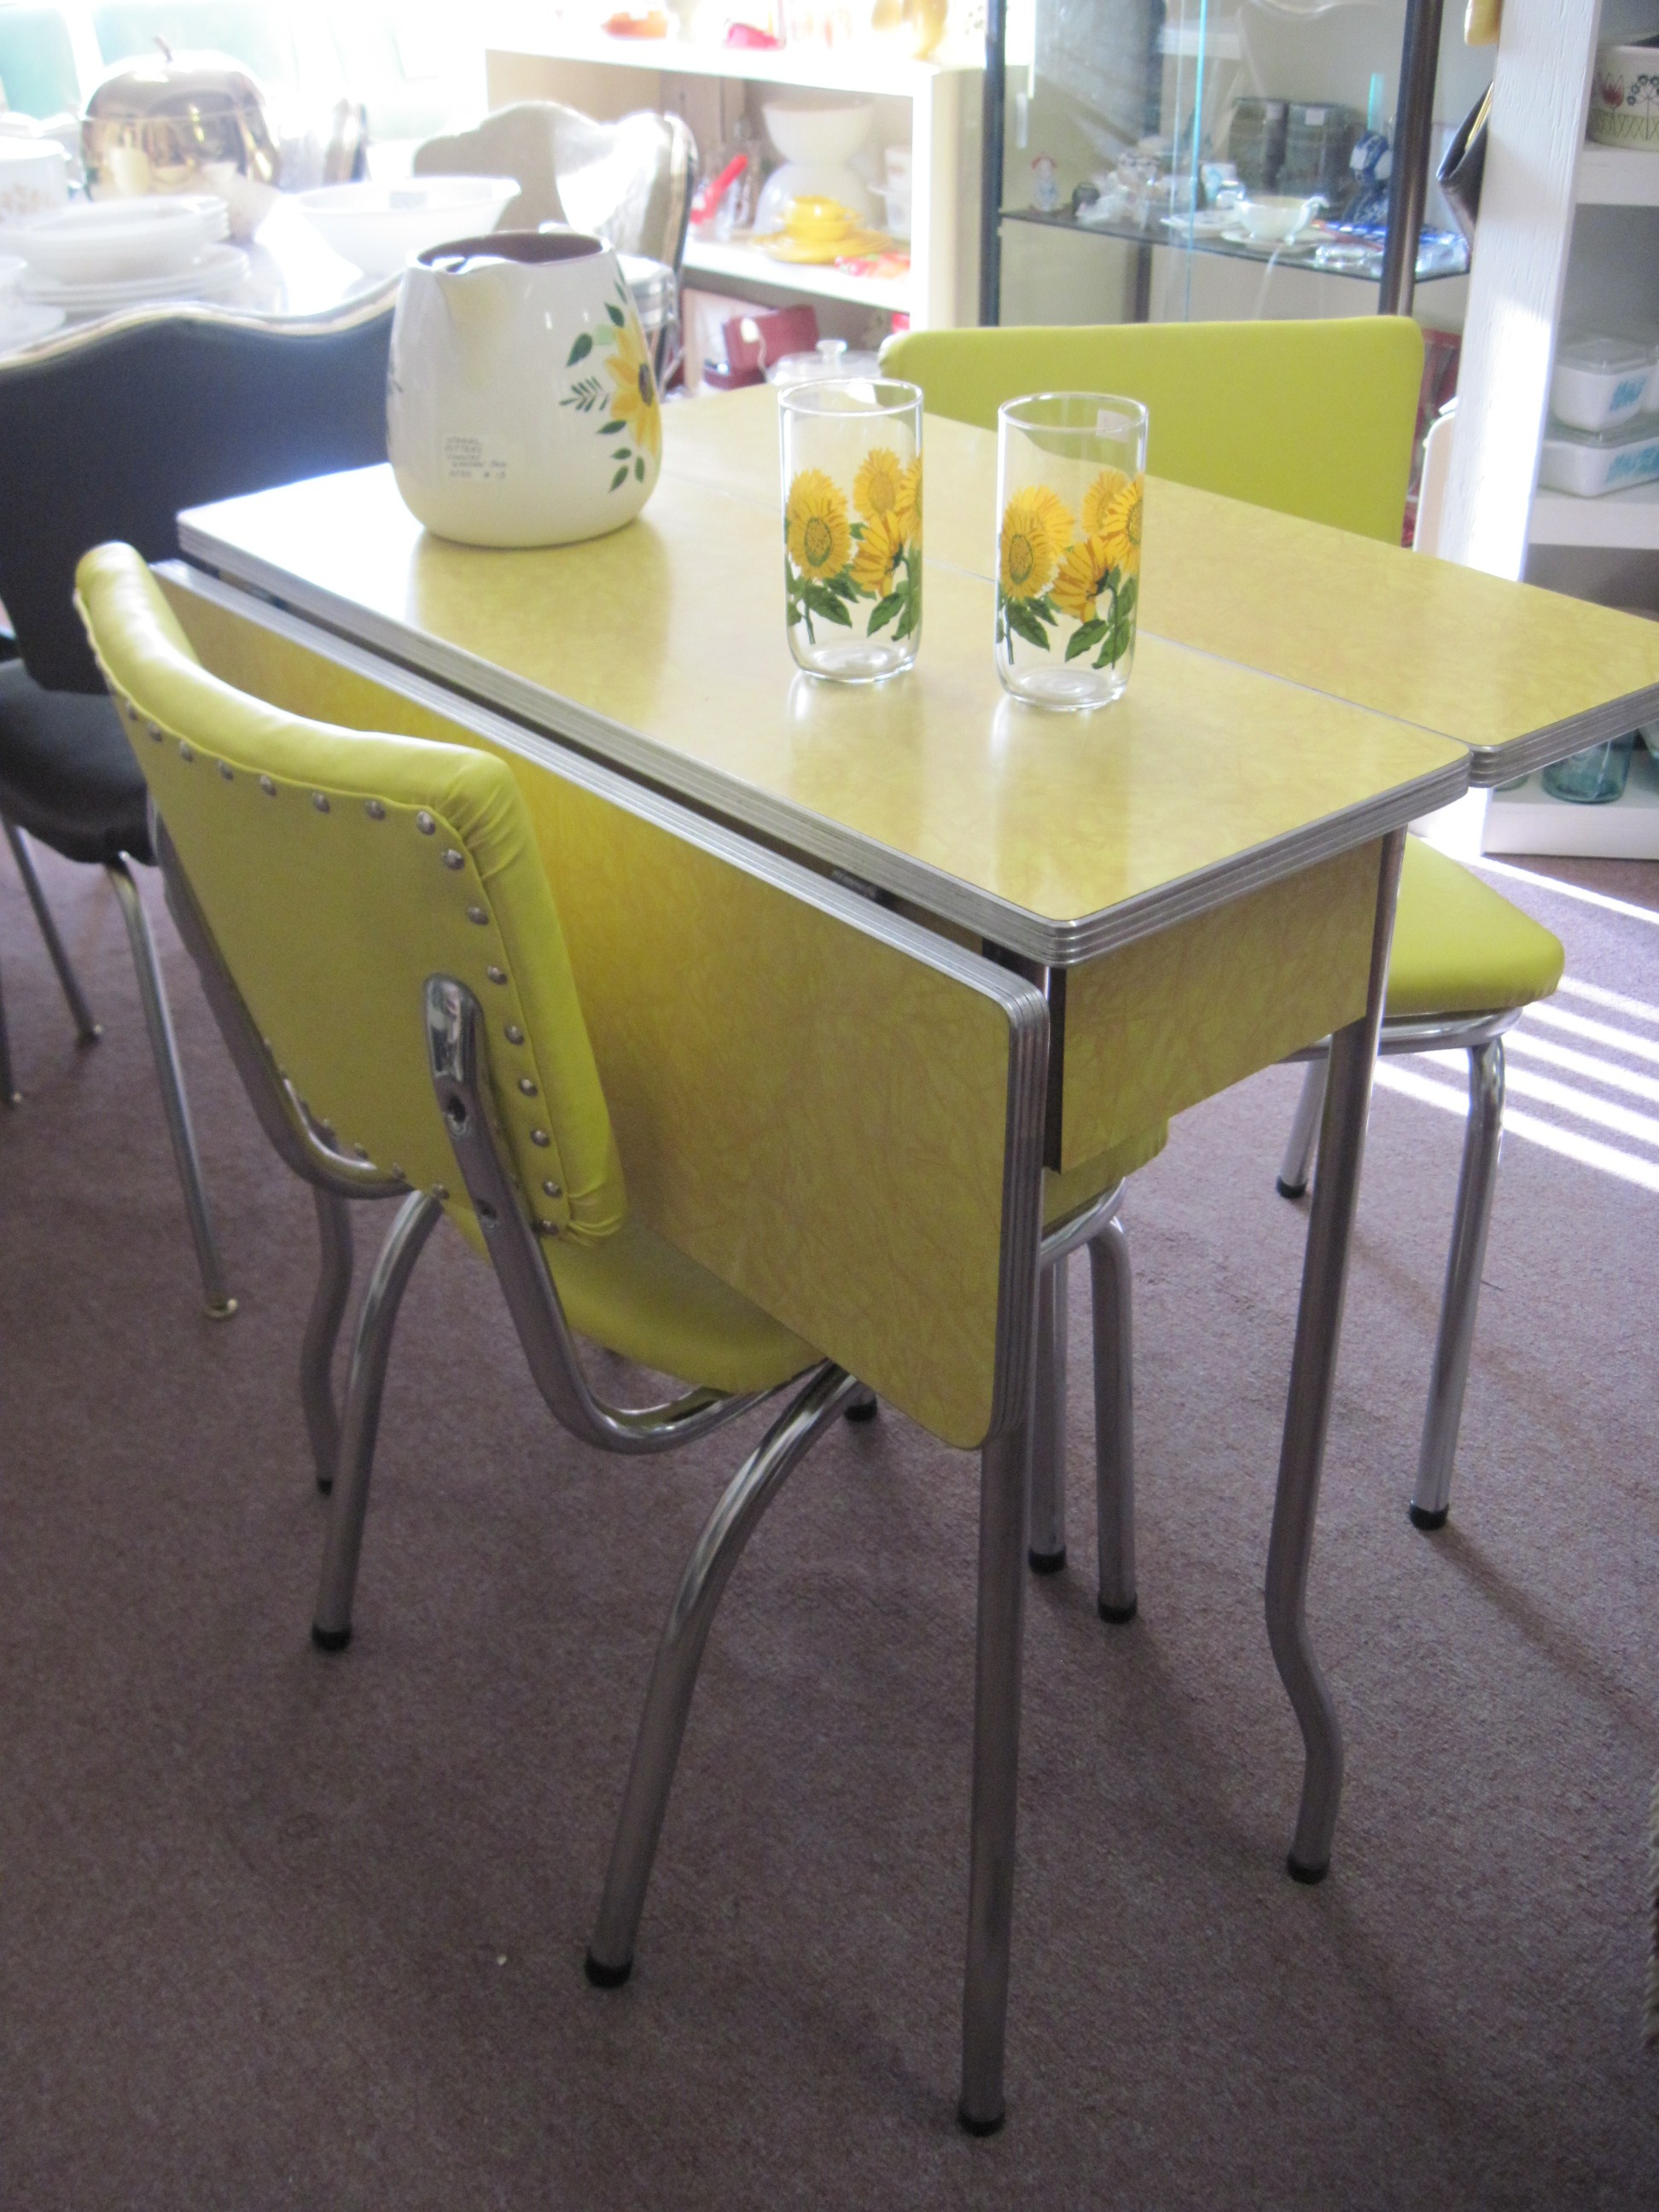 Formica Table And Chairs Yellow 1950s Cracked Ice Formica Table And Chairs